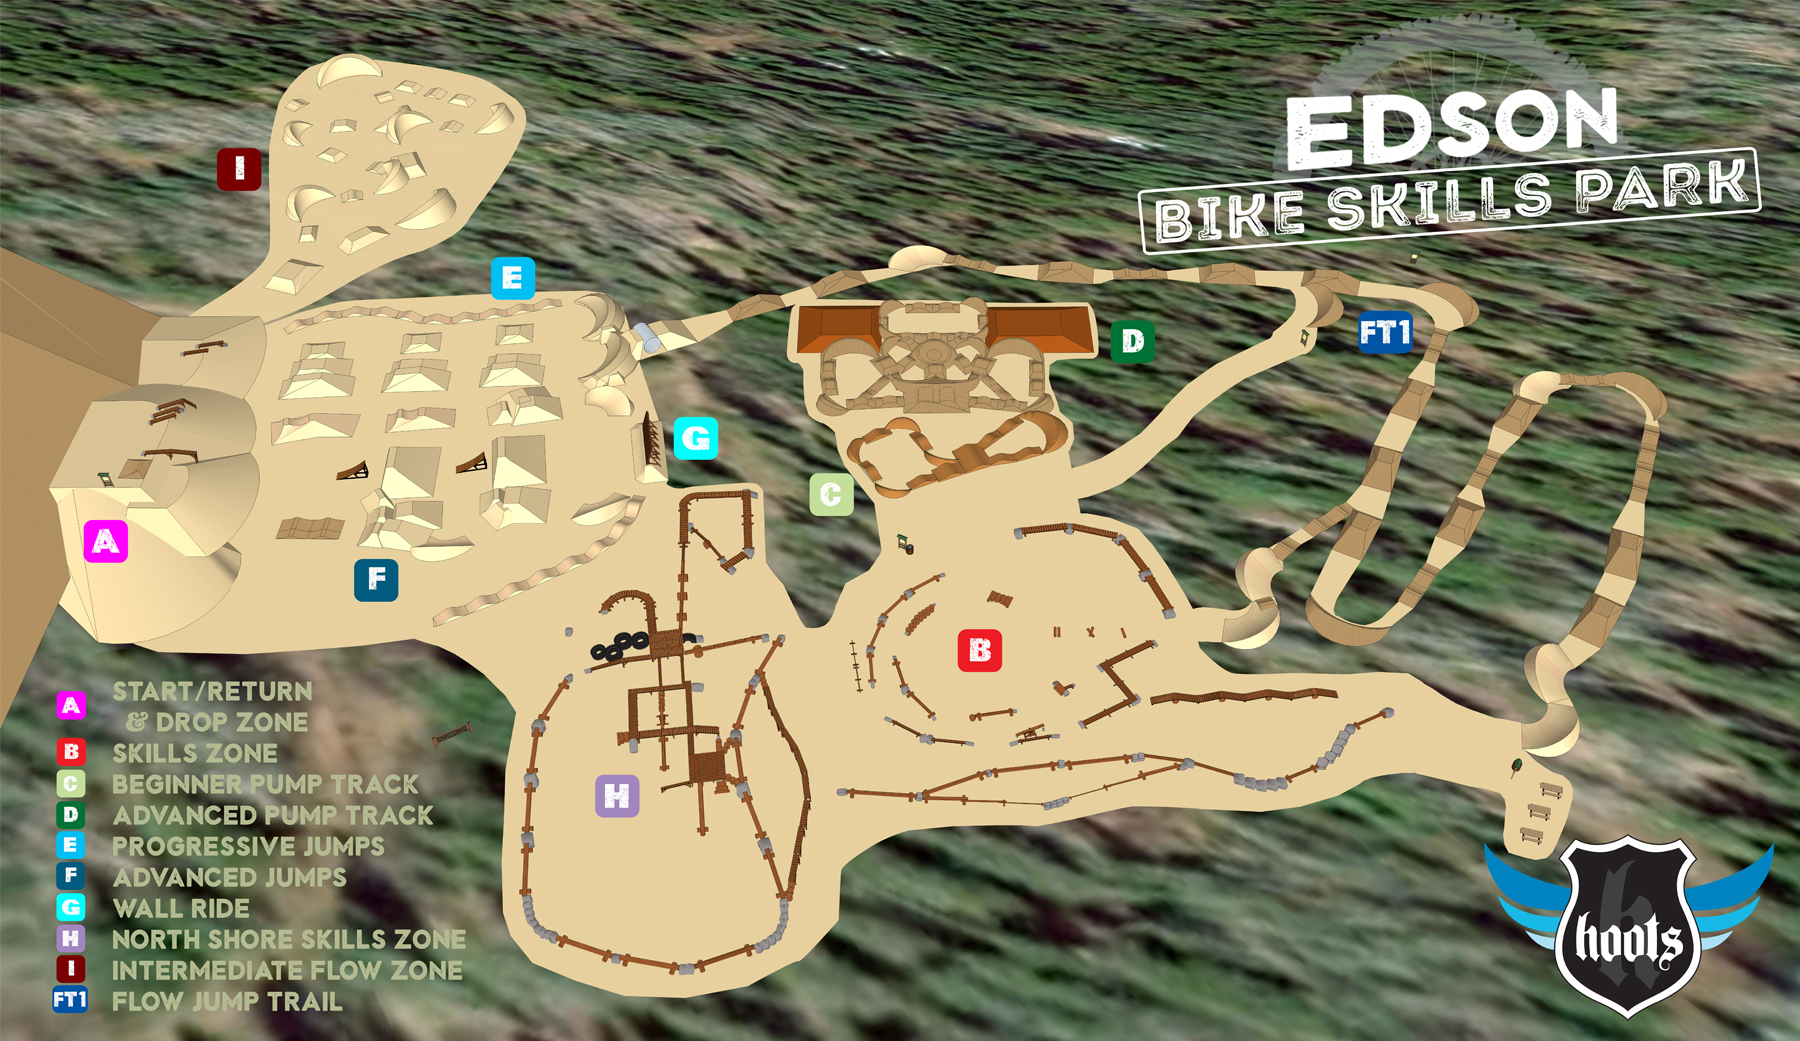 The Edson Bike Skills Park will have 10 diverse areas including dirt jump zones, two pump tracks, skills areas, and a flow trail. * 2016 design shown.